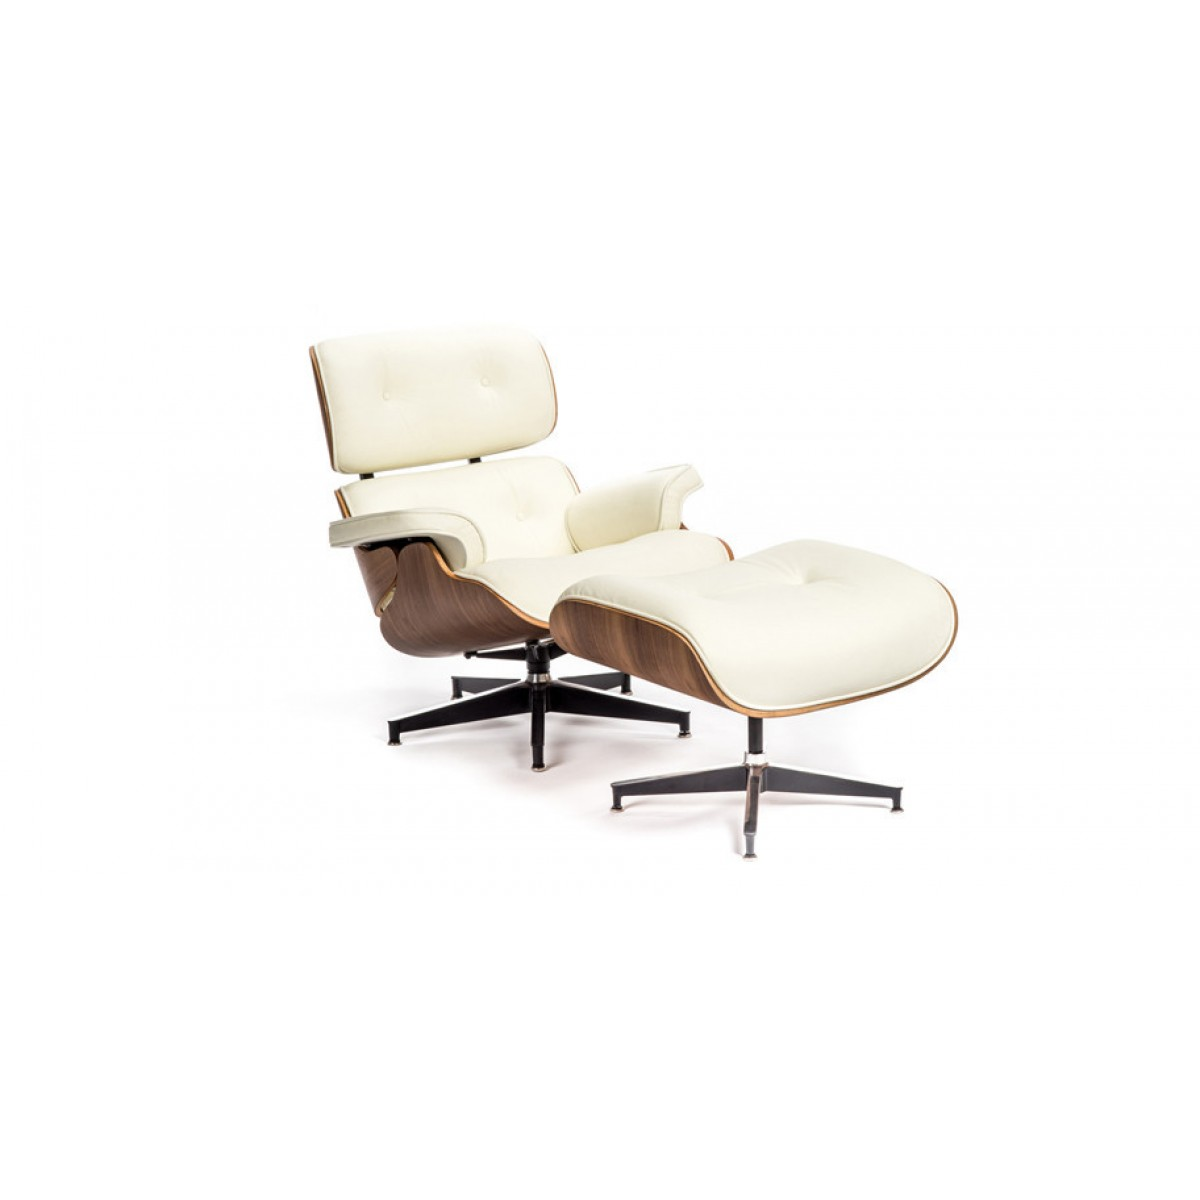 eames style lounge chair and ottoman white leather walnut wood replica. Black Bedroom Furniture Sets. Home Design Ideas